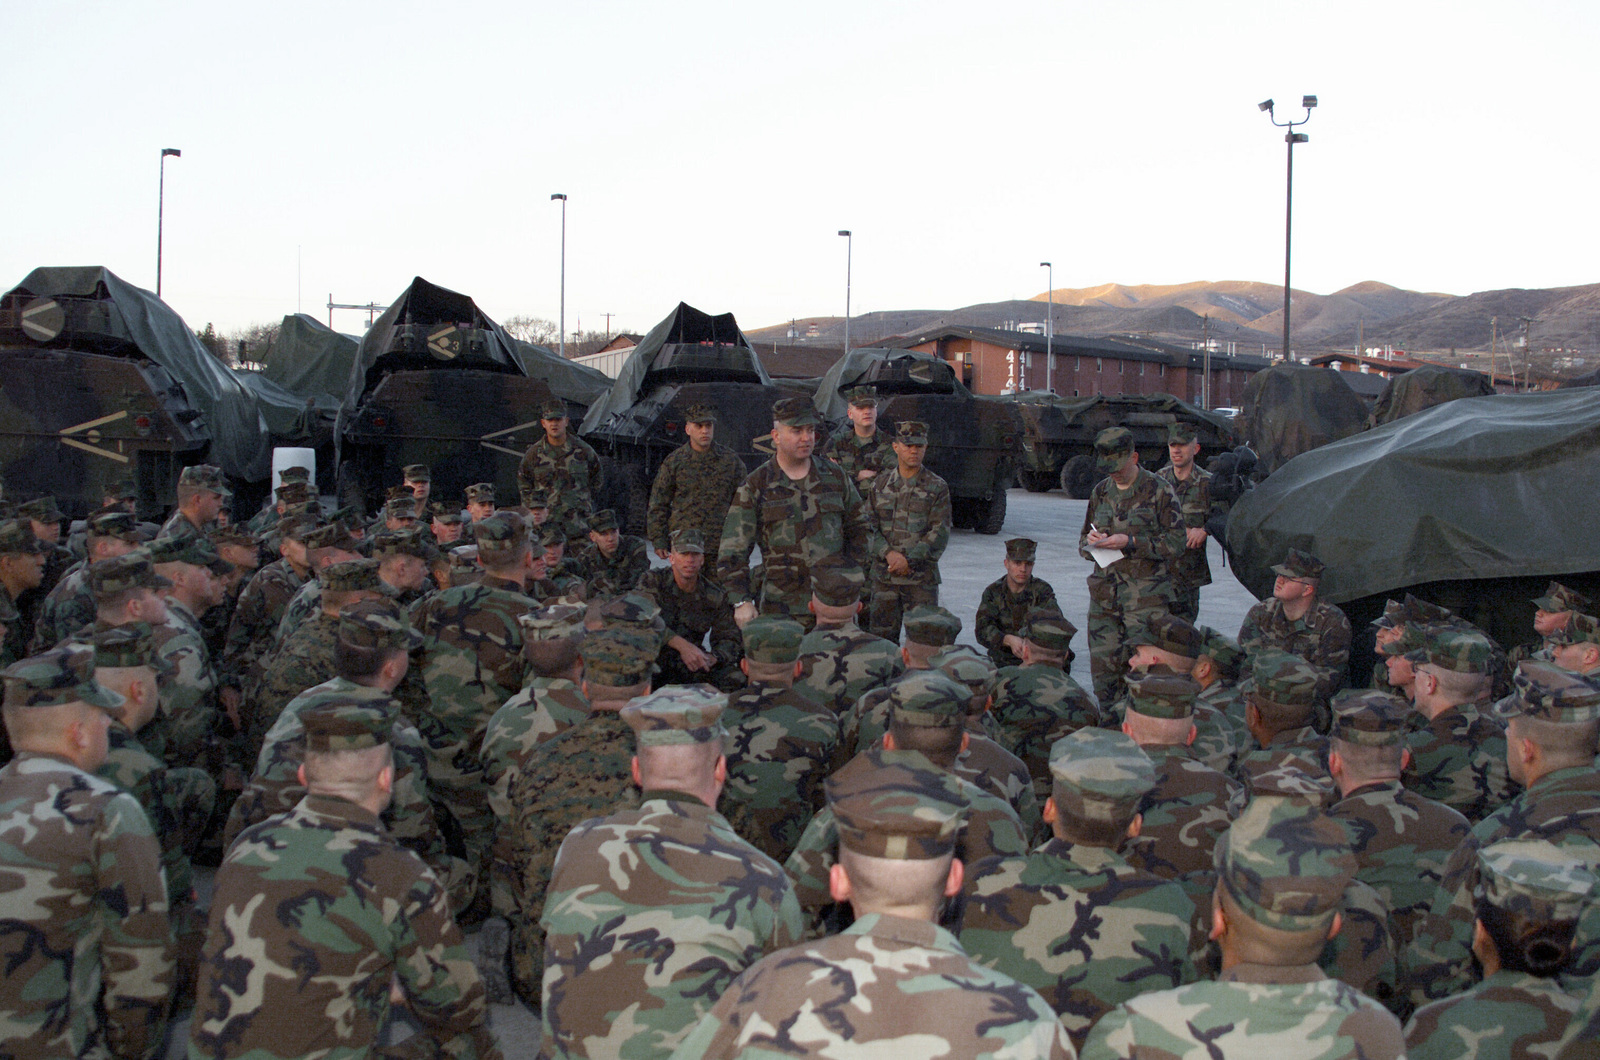 US Marine Corps (USMC) personnel from Charlie Company, 4th Light Armored Reconnaissance (LAR) Battalion, 4th Marine Division, form a school circle around First Sergeant (1SGT) Dikenson, in support of OPERATION IRAQI FREEDOM